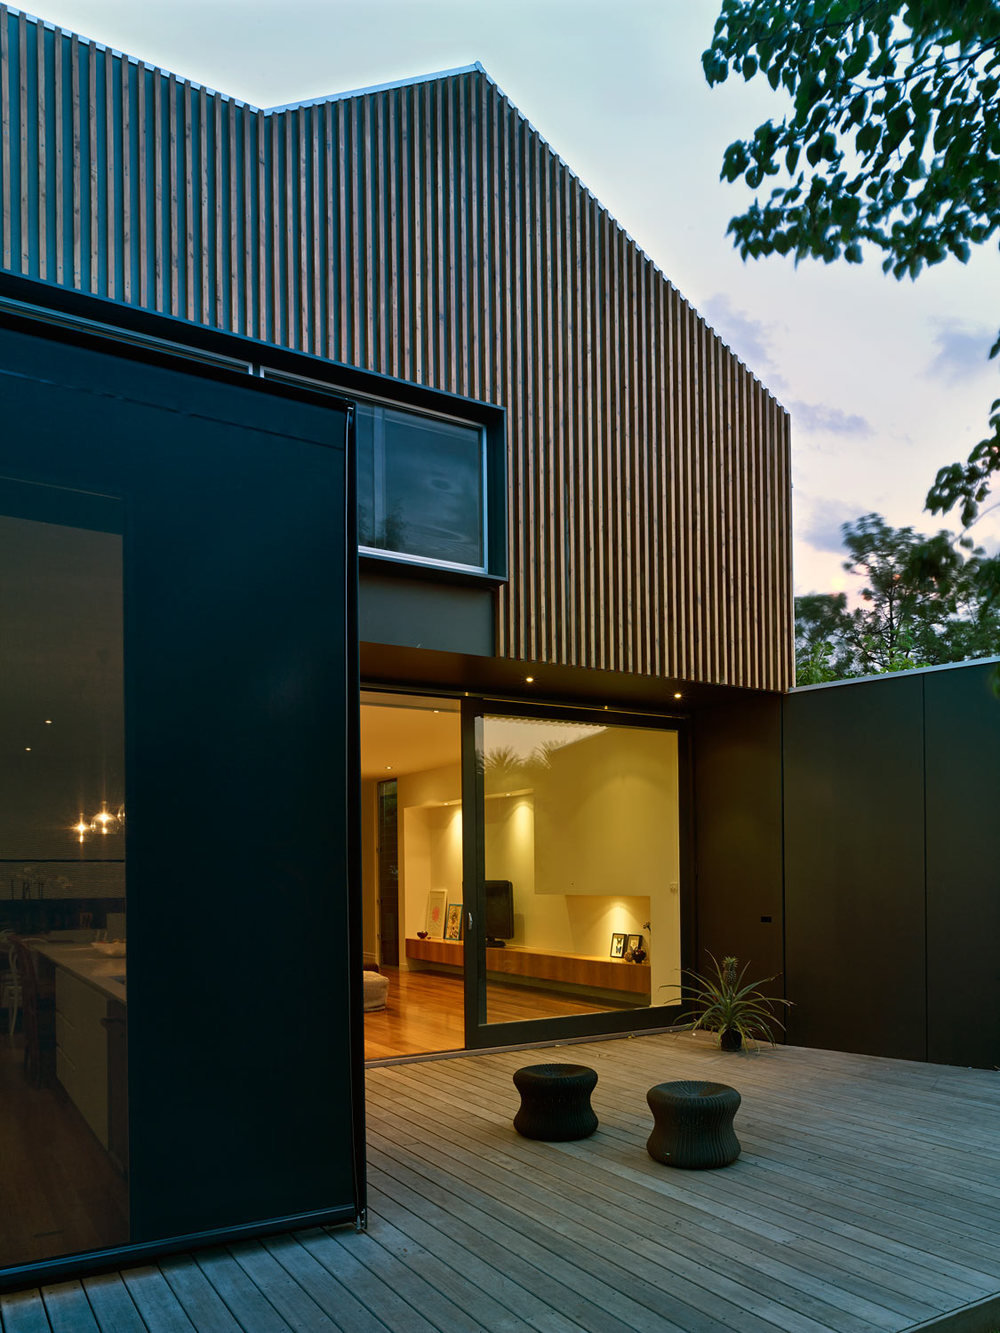 northcote-house-renovation-by-warc-studio-02.jpg